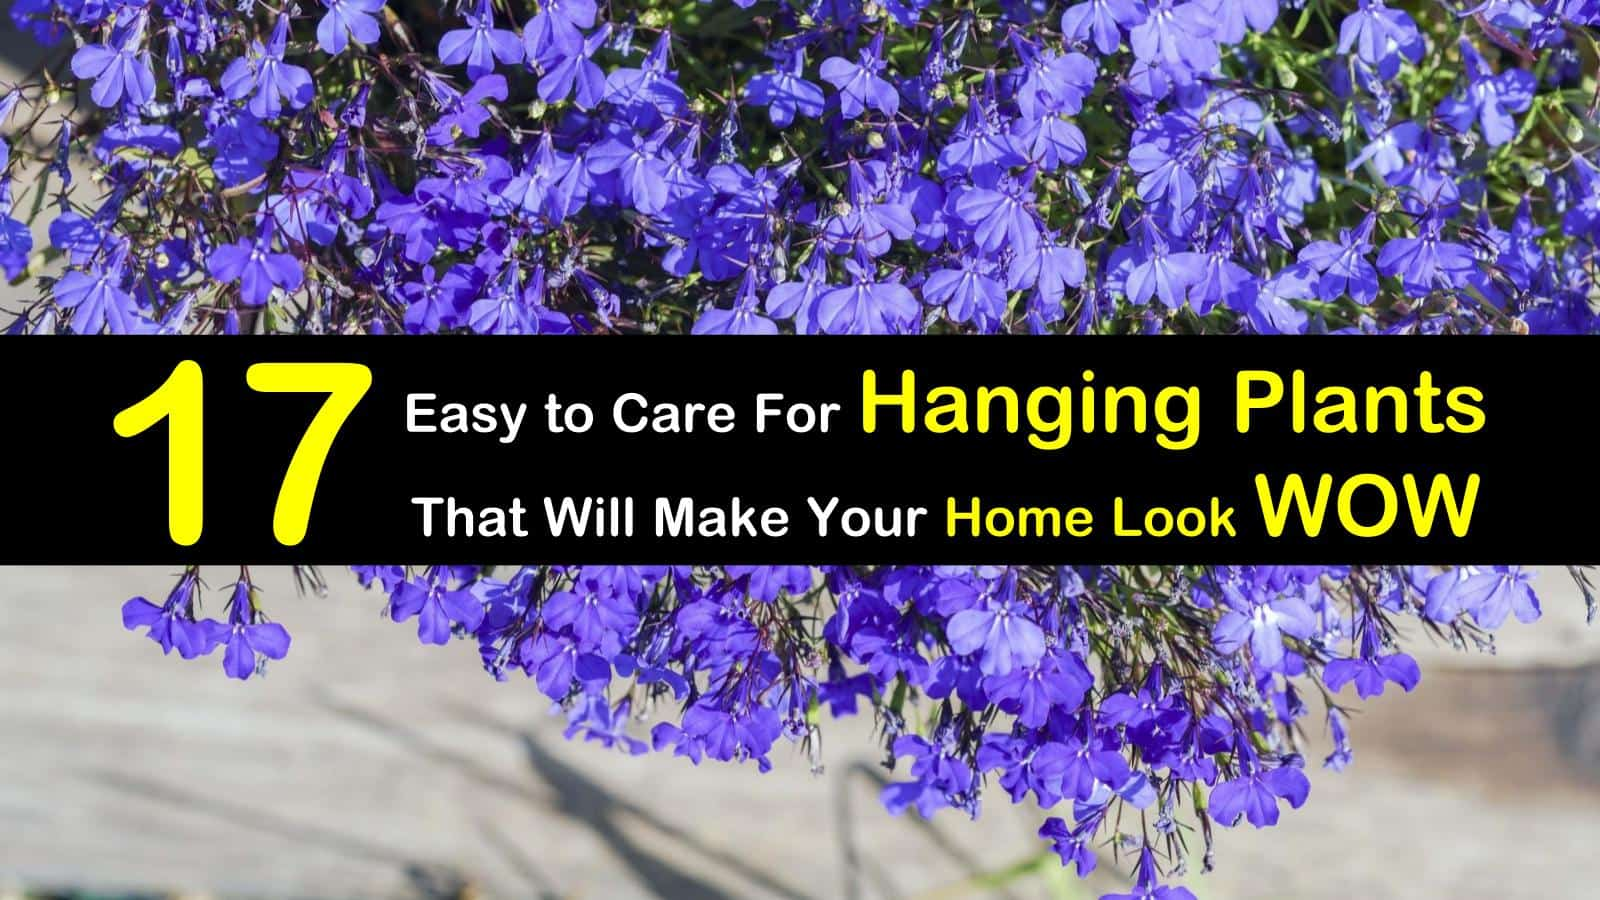 17 easy to care for hanging plants that will make your home look wow 17 hanging plants img izmirmasajfo